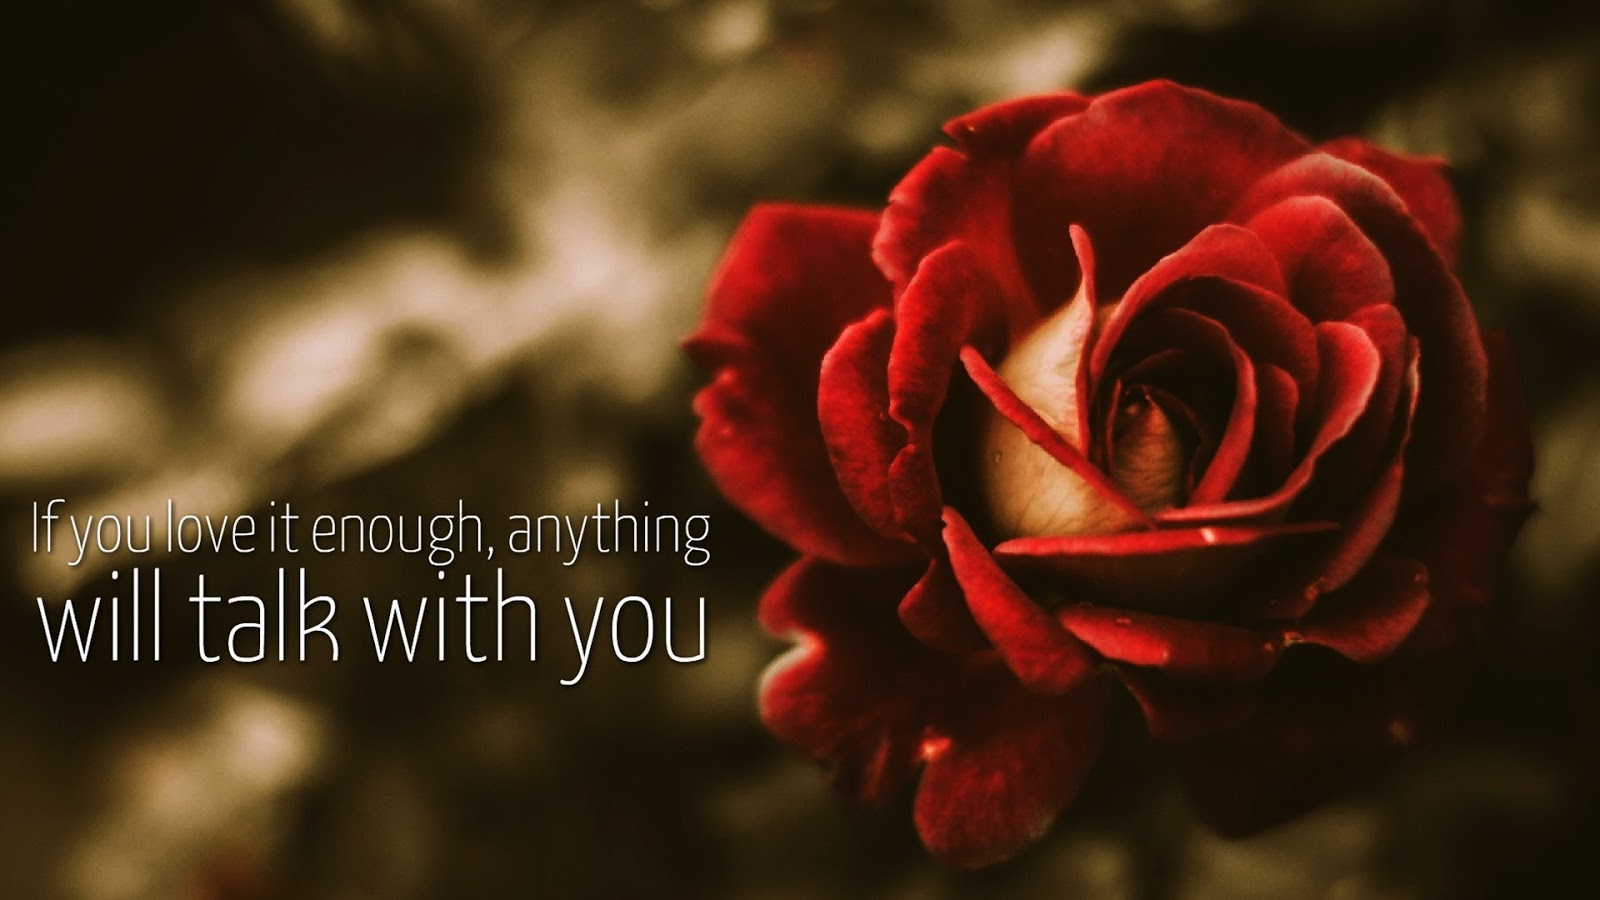 best-images-of-love-download-HD-Love-Images-With-Love-Quotes-Images-And-Love-Couple-Images-Best-wallpaper-wp3403167